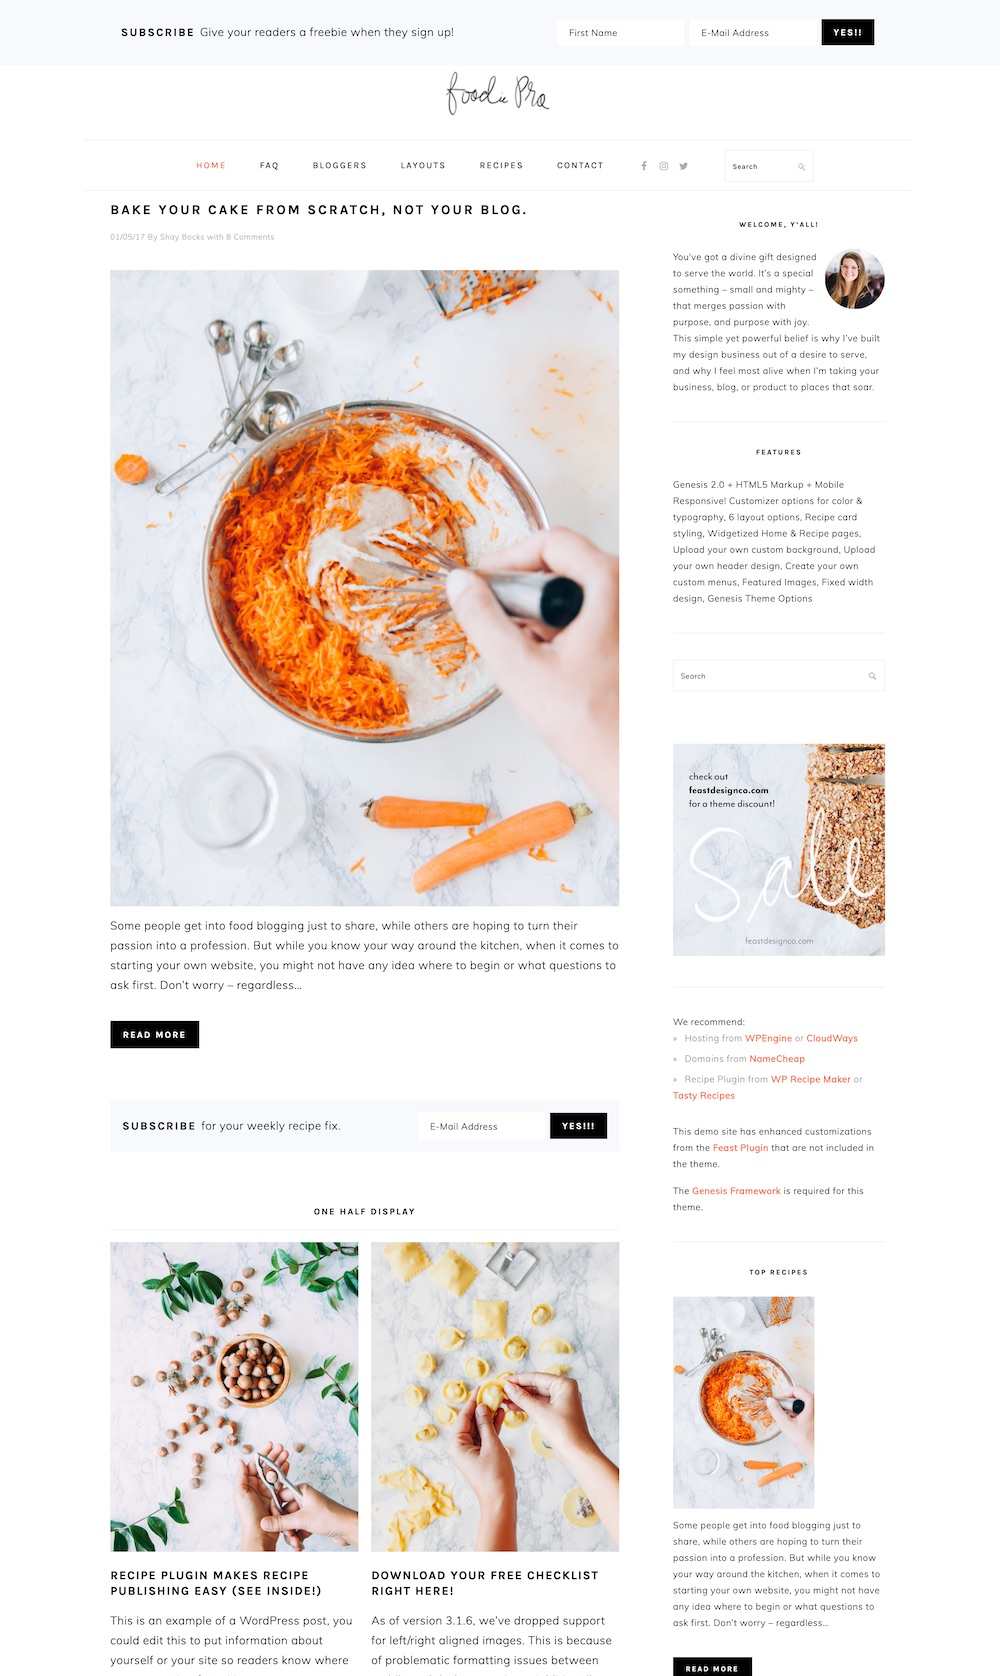 FoodiePro WordPress theme | The best WordPress themes for food bloggers